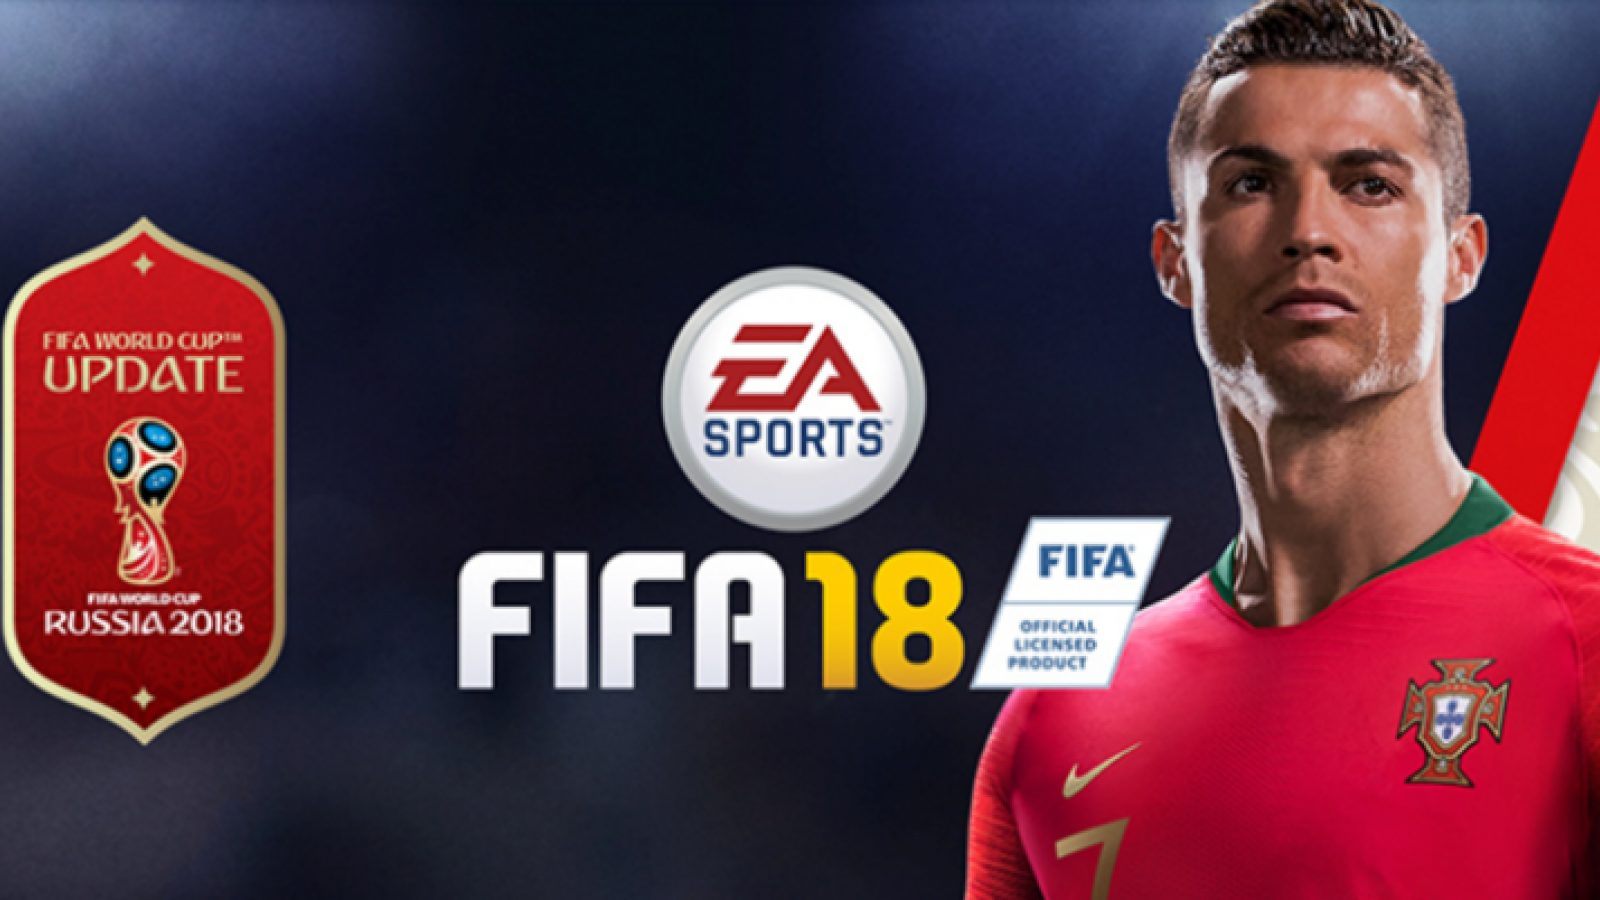 FROM HXTGAME.COM FIFA SOCCER FIFA WORLD CUP | GET Fifa Points and Fifa Coins FOR UNLIMITED RESOURCES